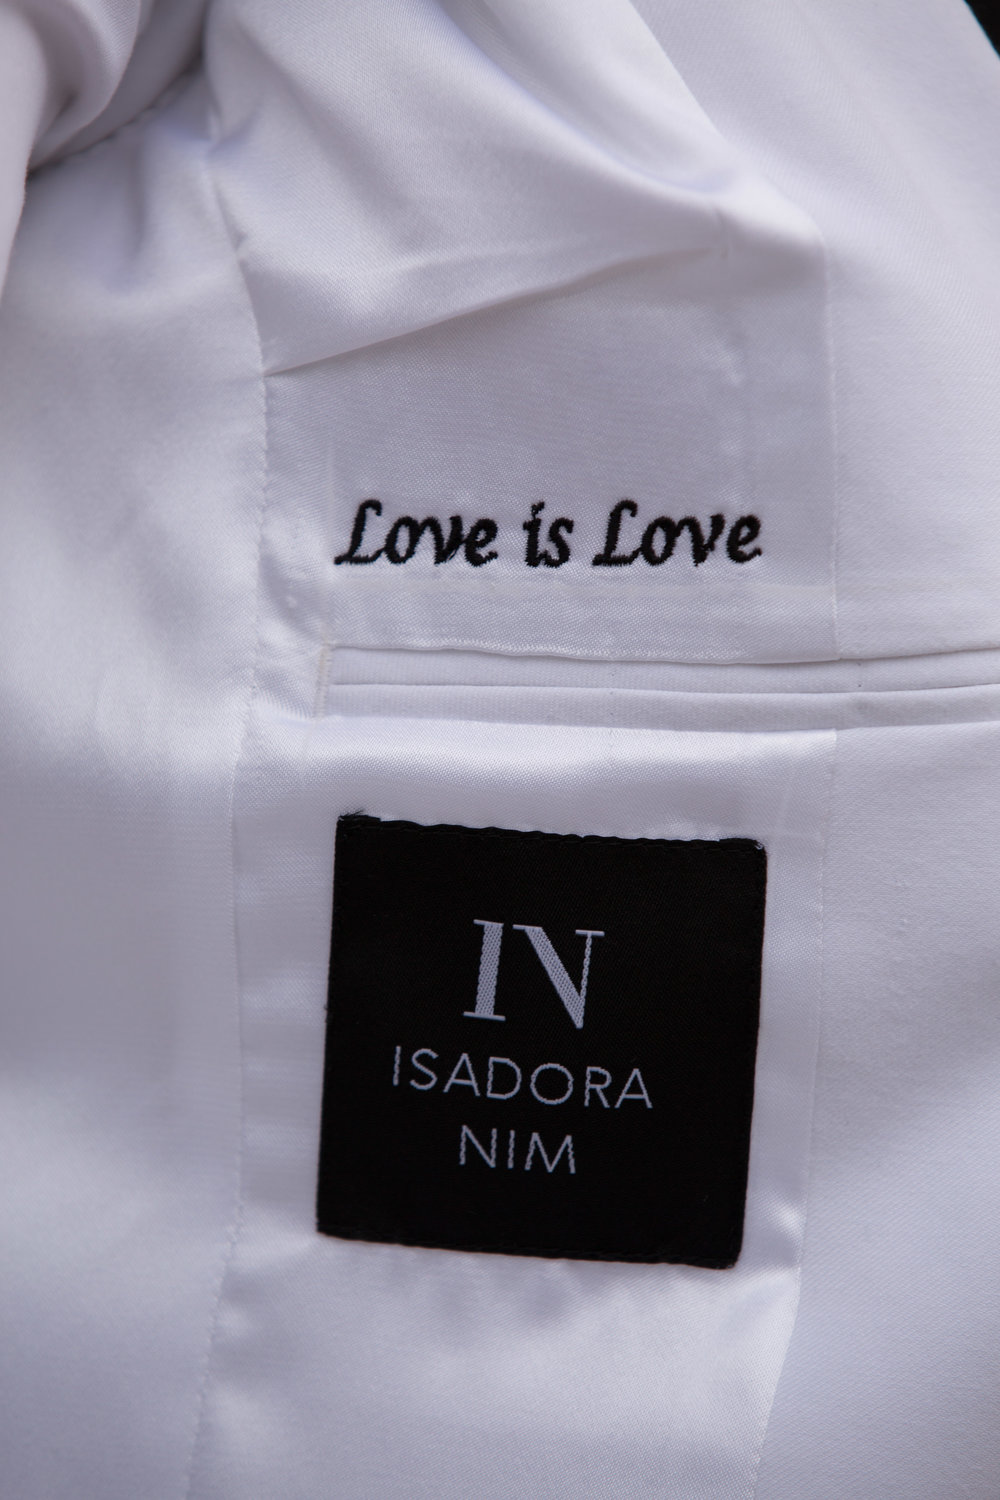 6eb8a27895a Isadora Nim Isadora Nim - Get the best wedding suits plus size for ...